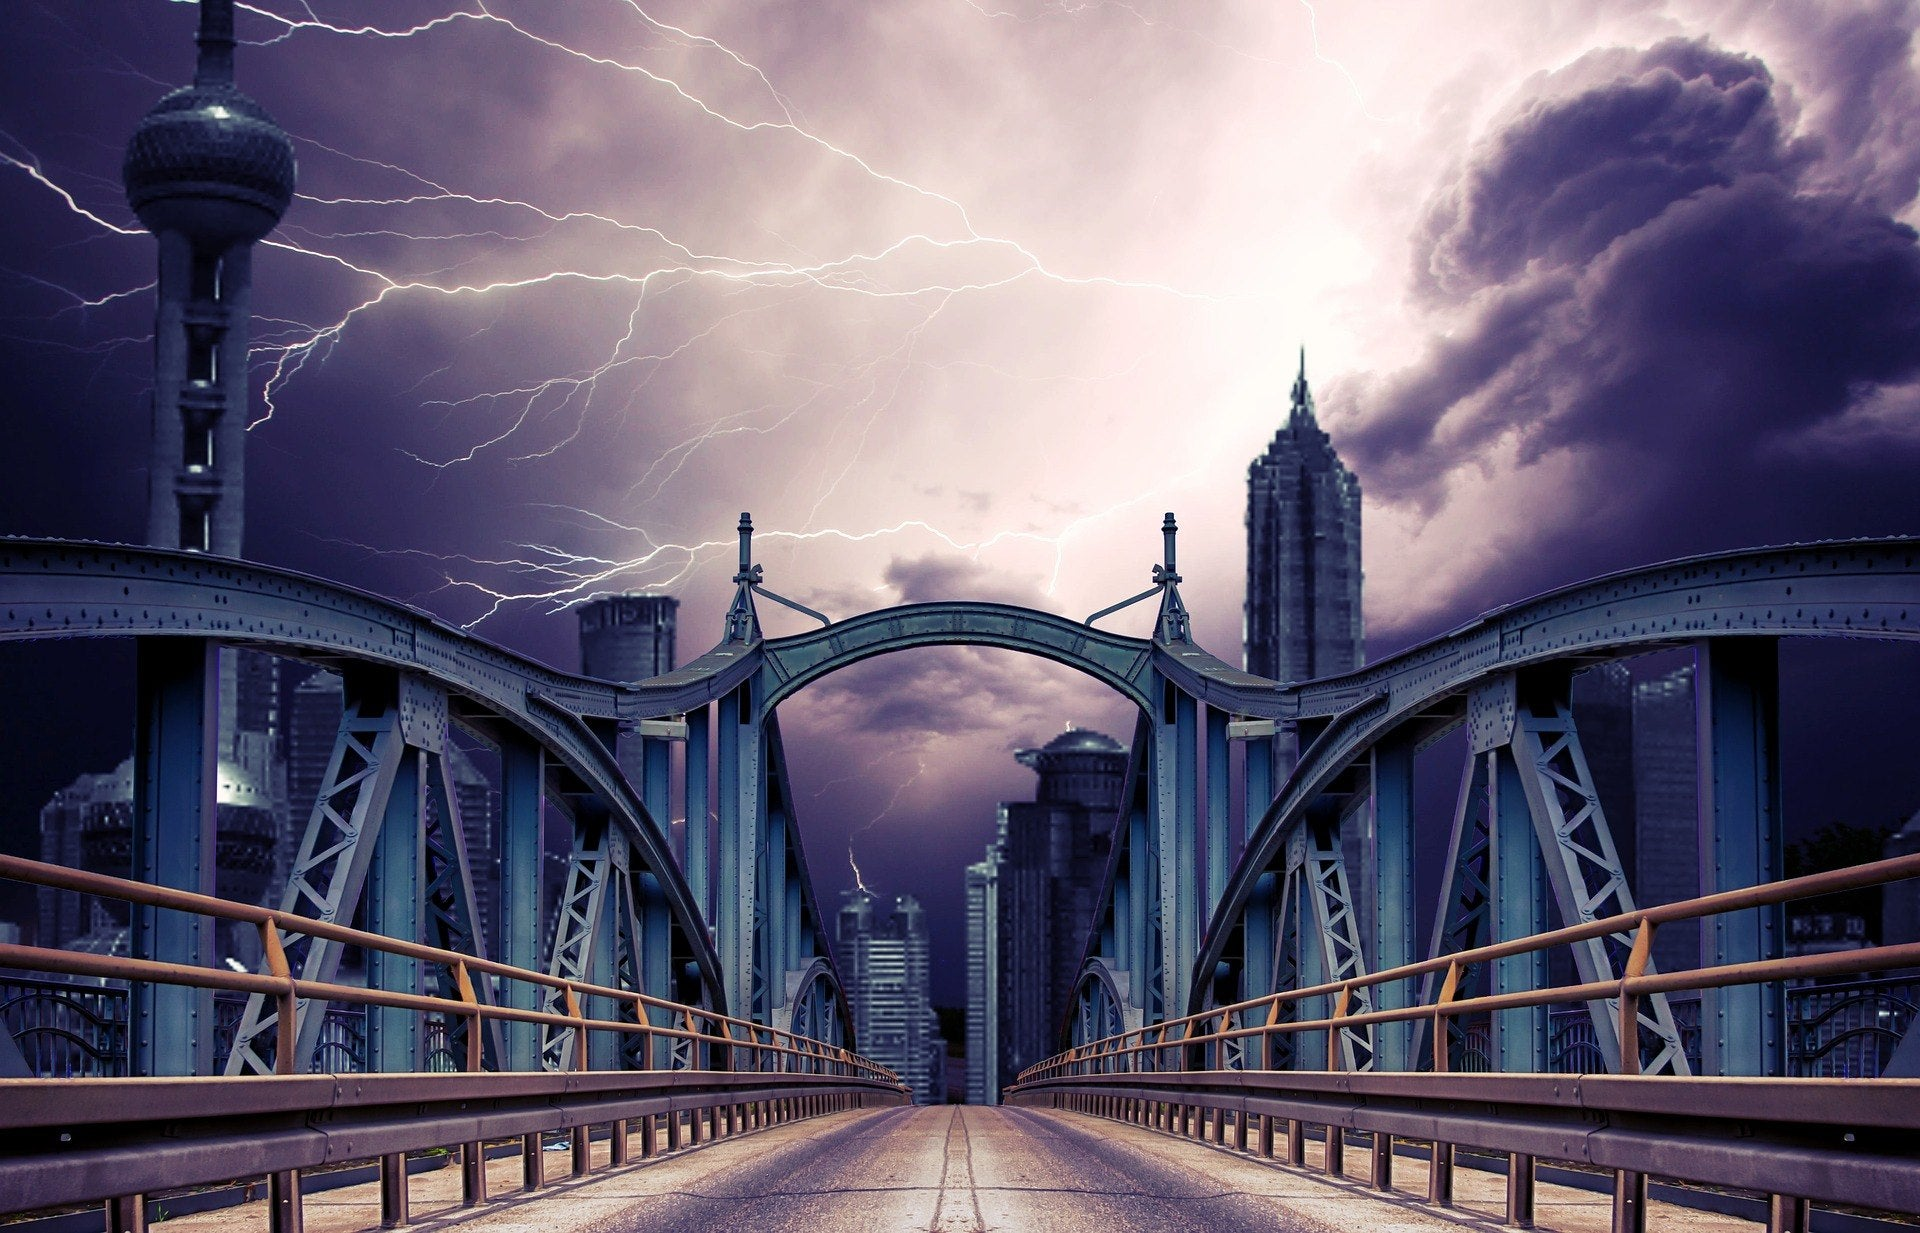 How to Take the Extraordinary Lightning Photos